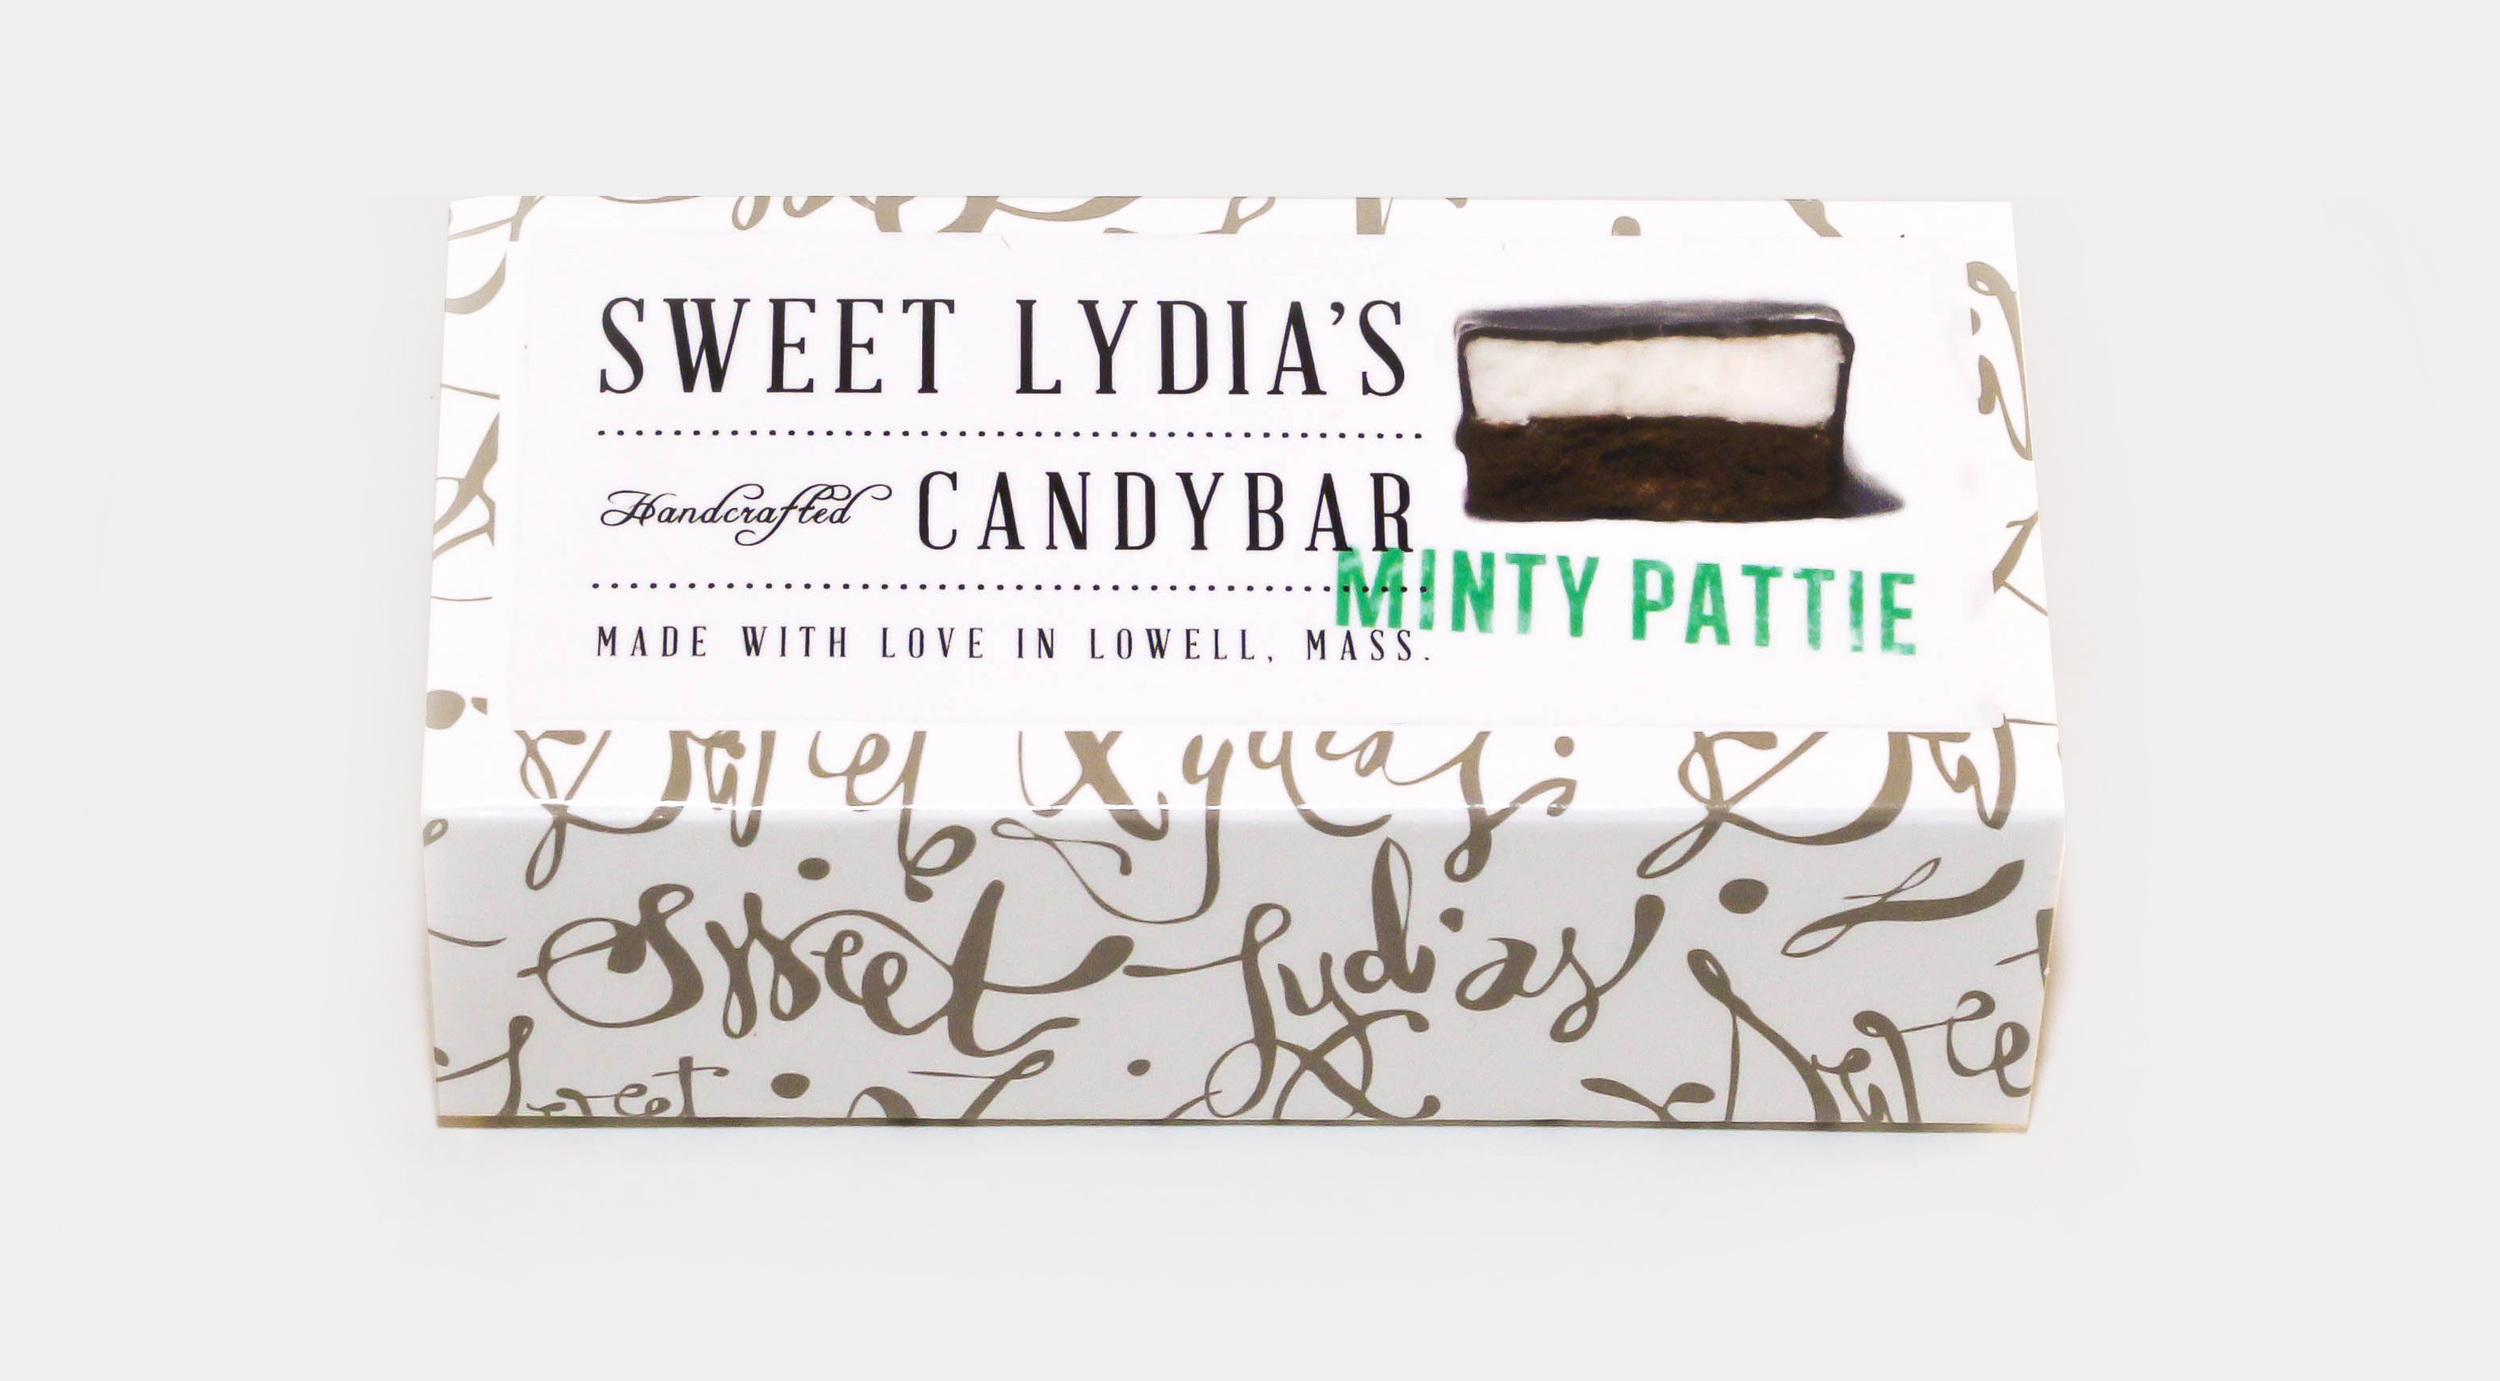 Sweet Lydia's package design